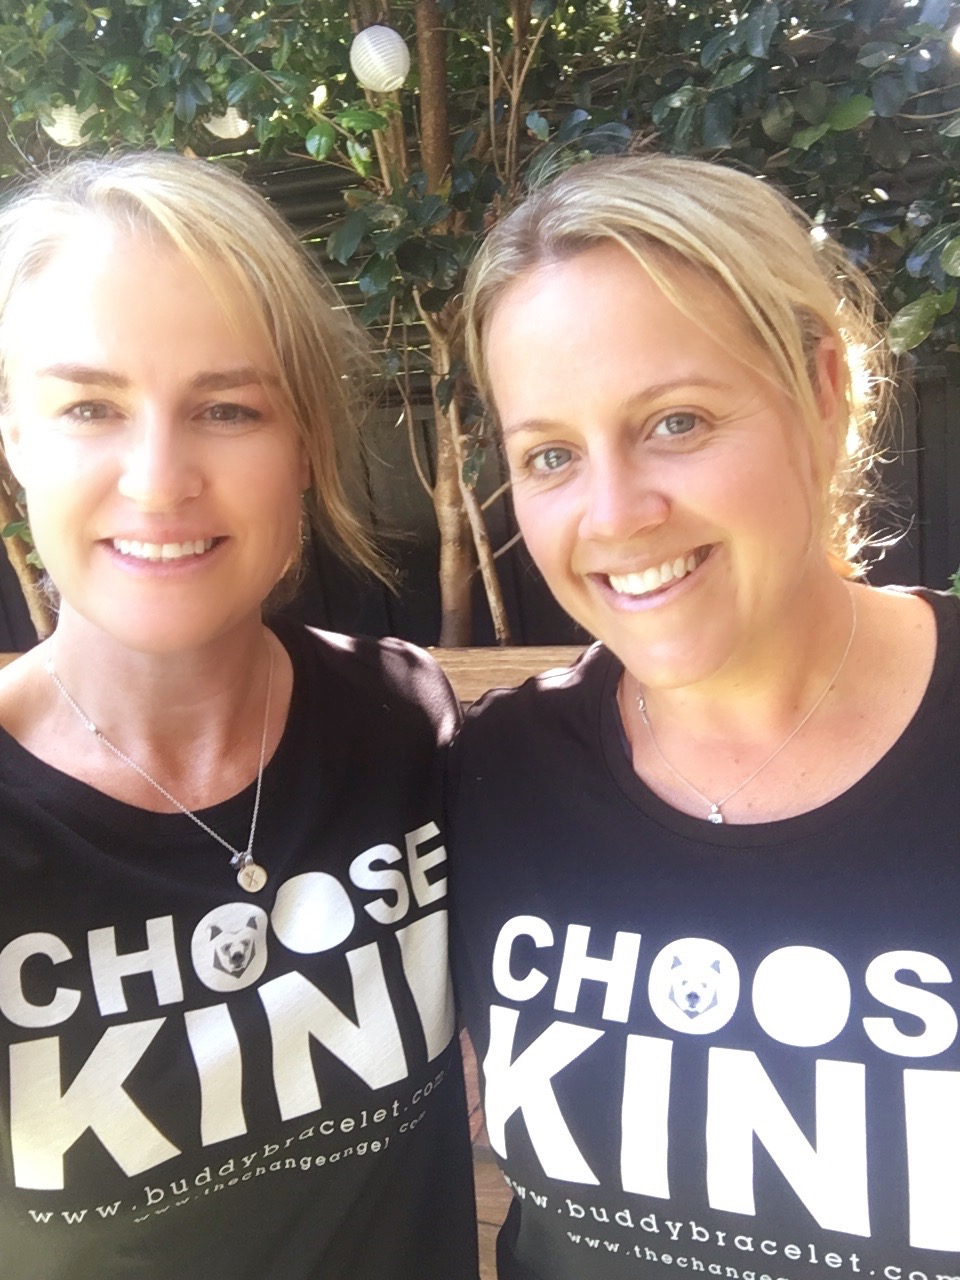 choose-kind-tshirt-j-b.jpg